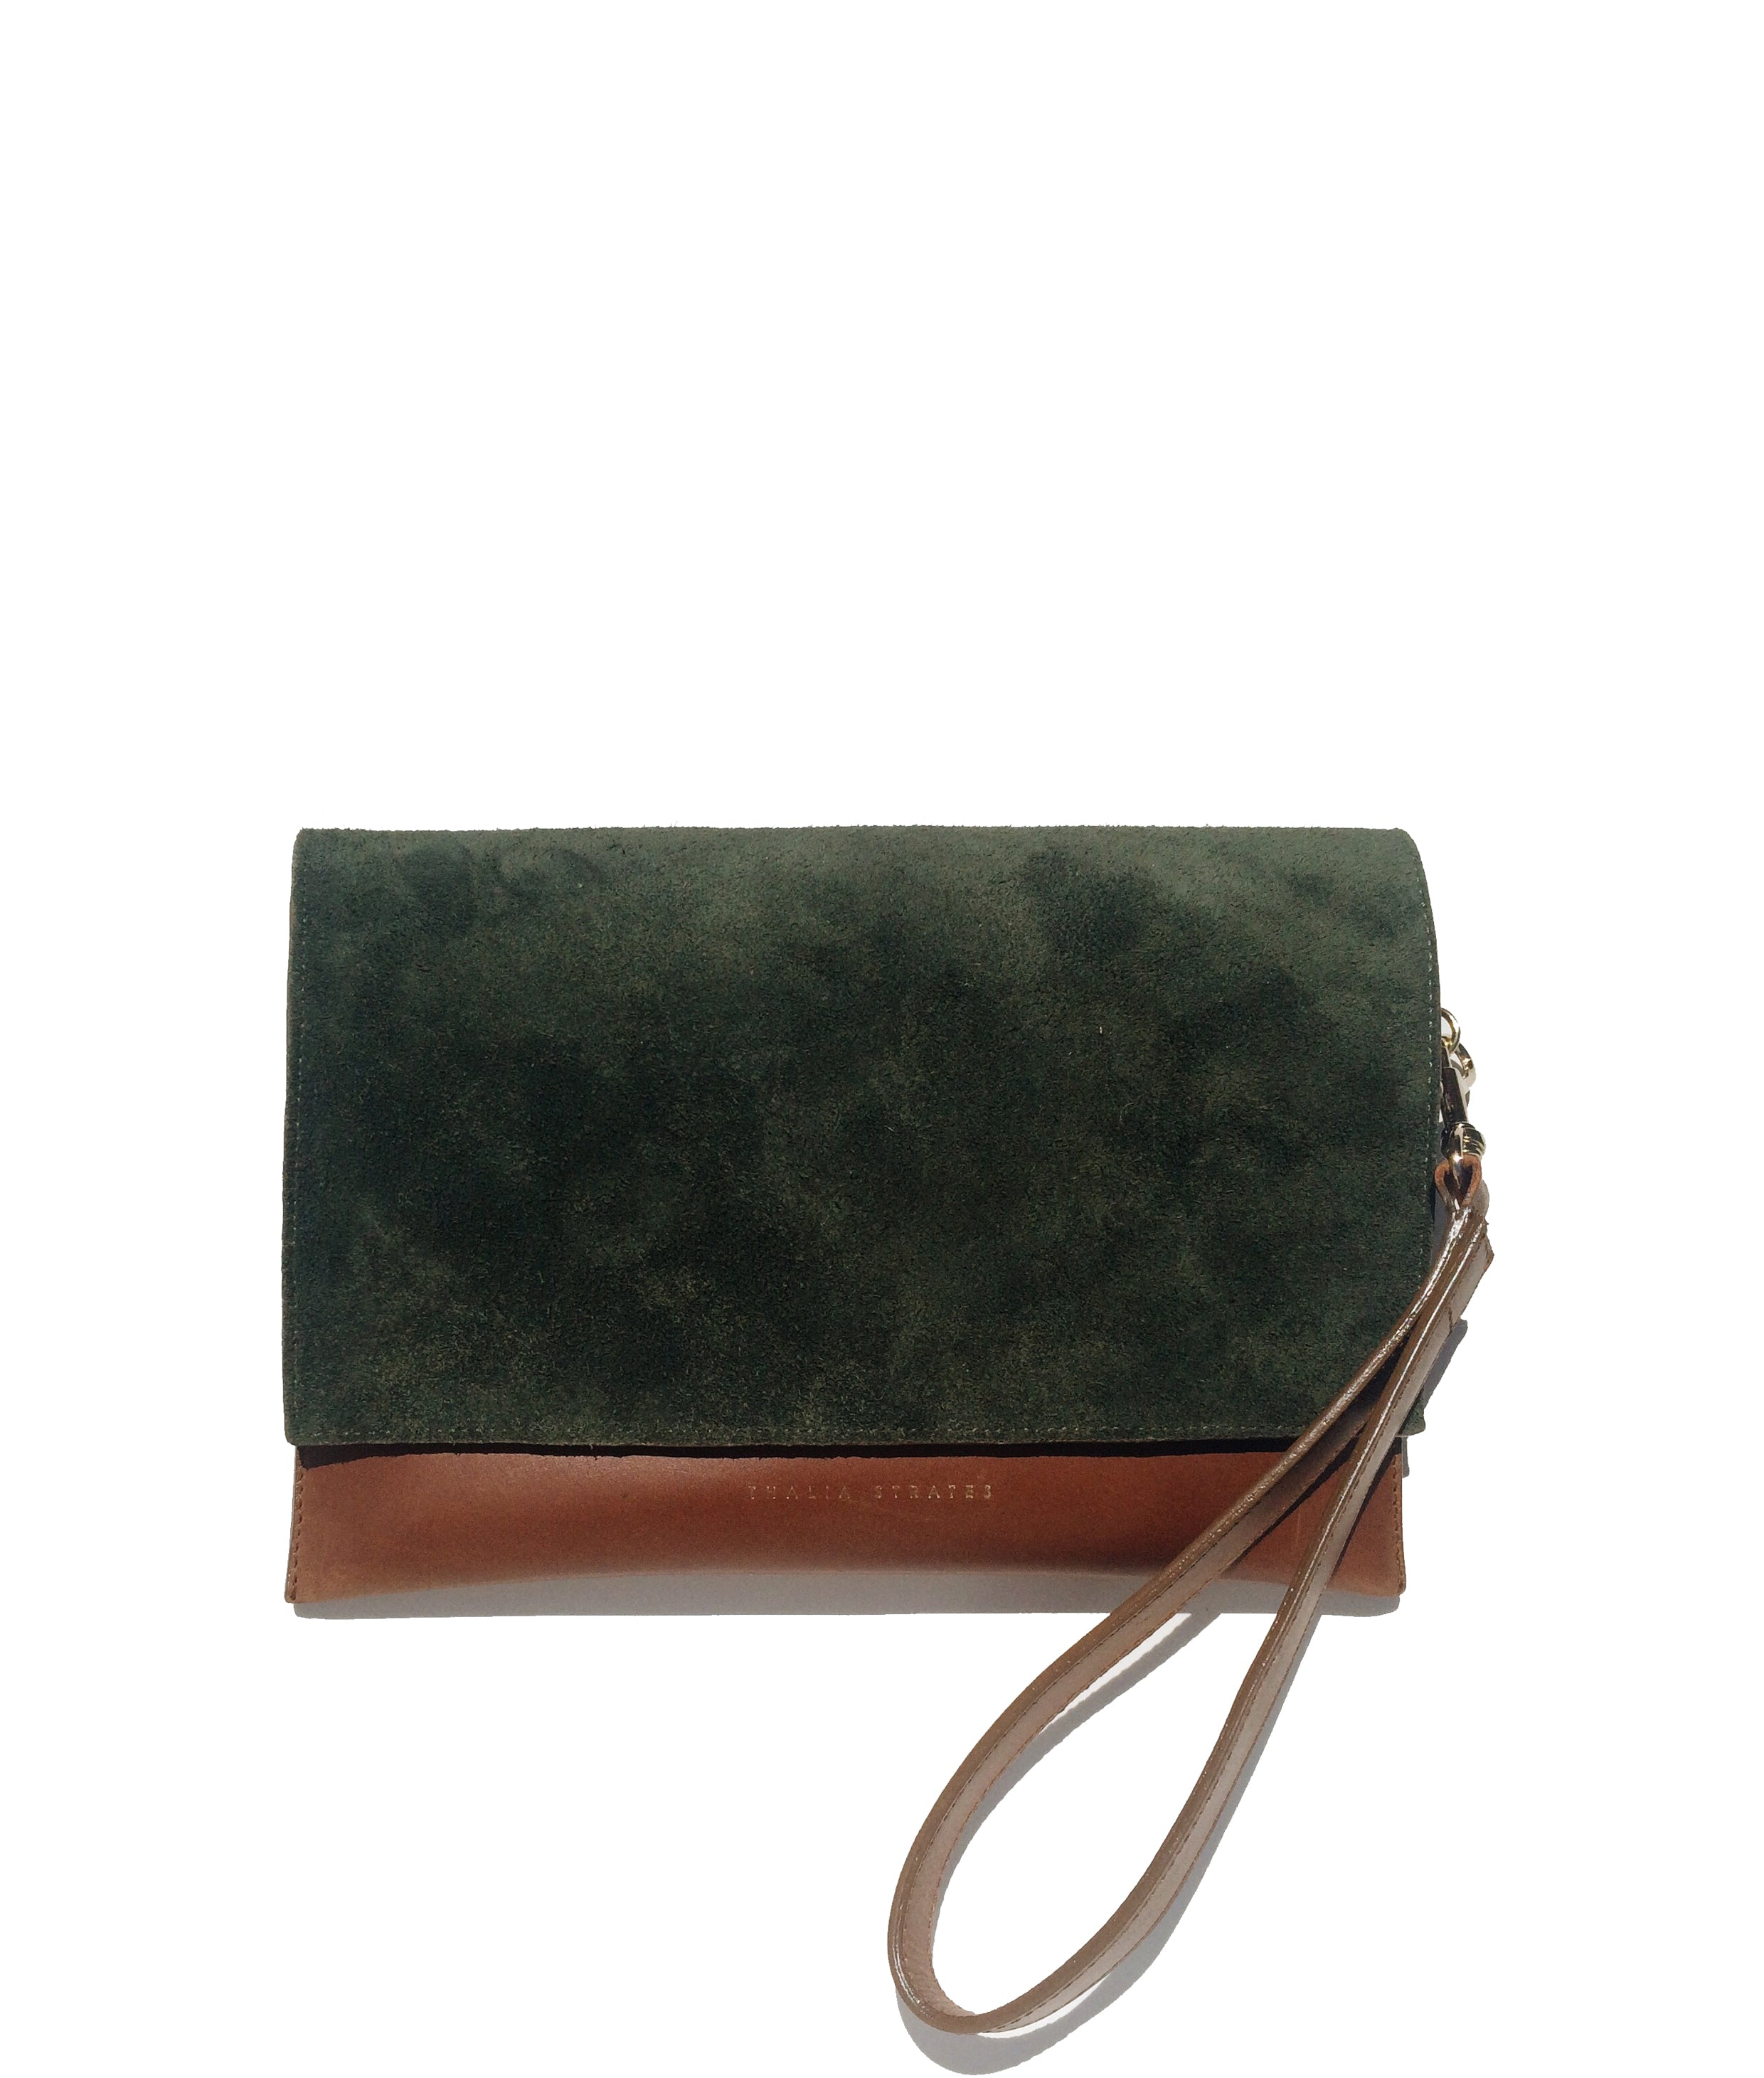 Mali Beltbag with suede detail